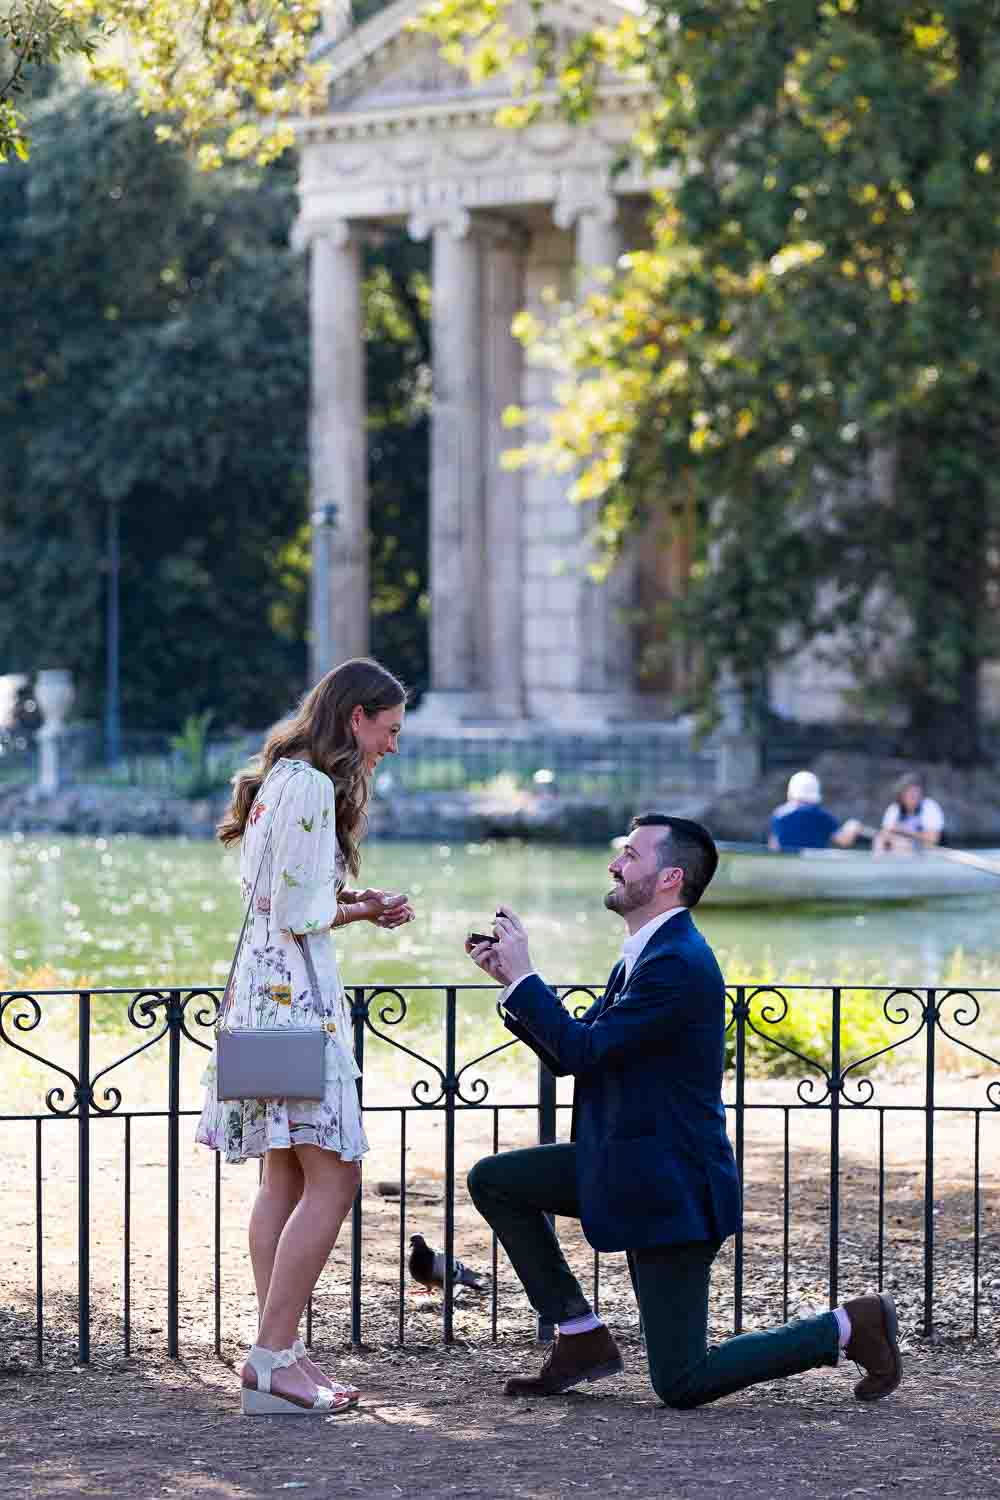 Knee down wedding proposal in Rome photographed at the Villa Borghese park in Rome Italy